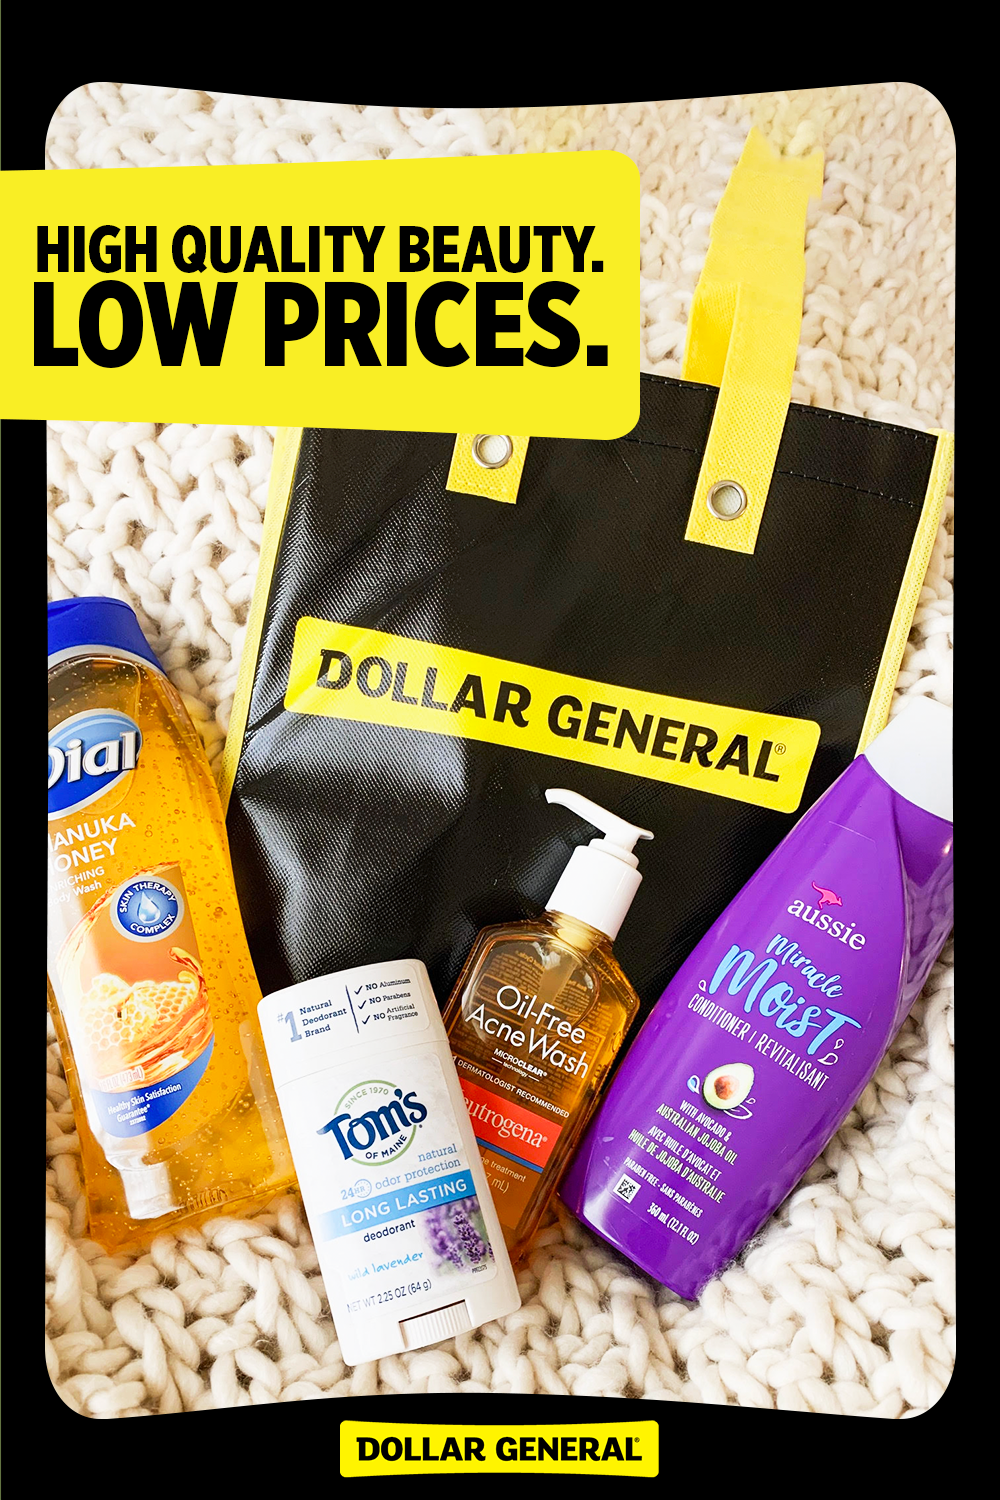 Now at Dollar General, we have beauty essentials like